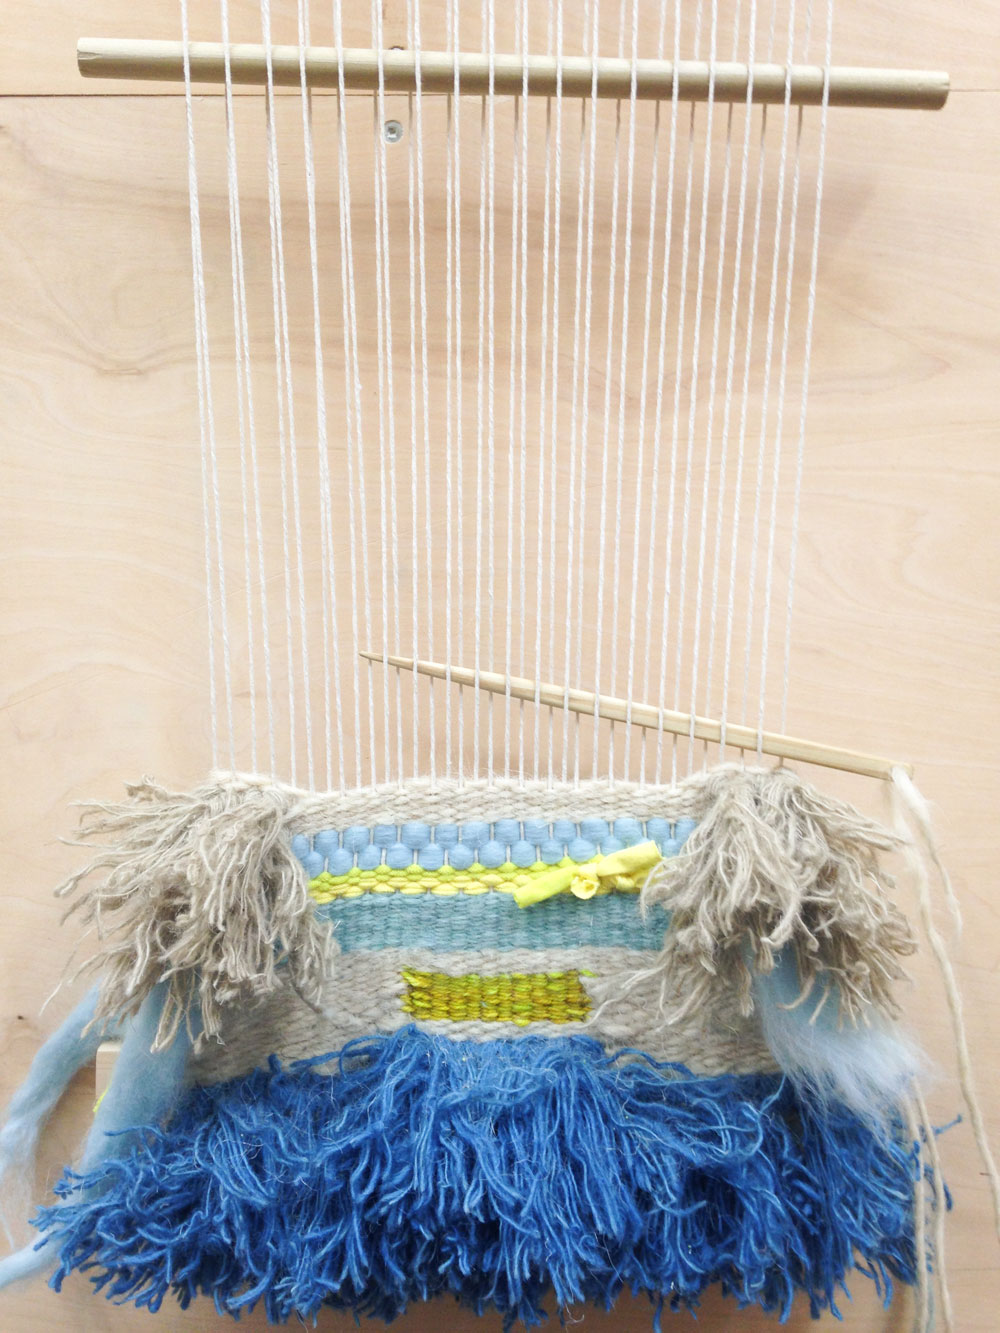 my weaving by Wise Craft Handmade